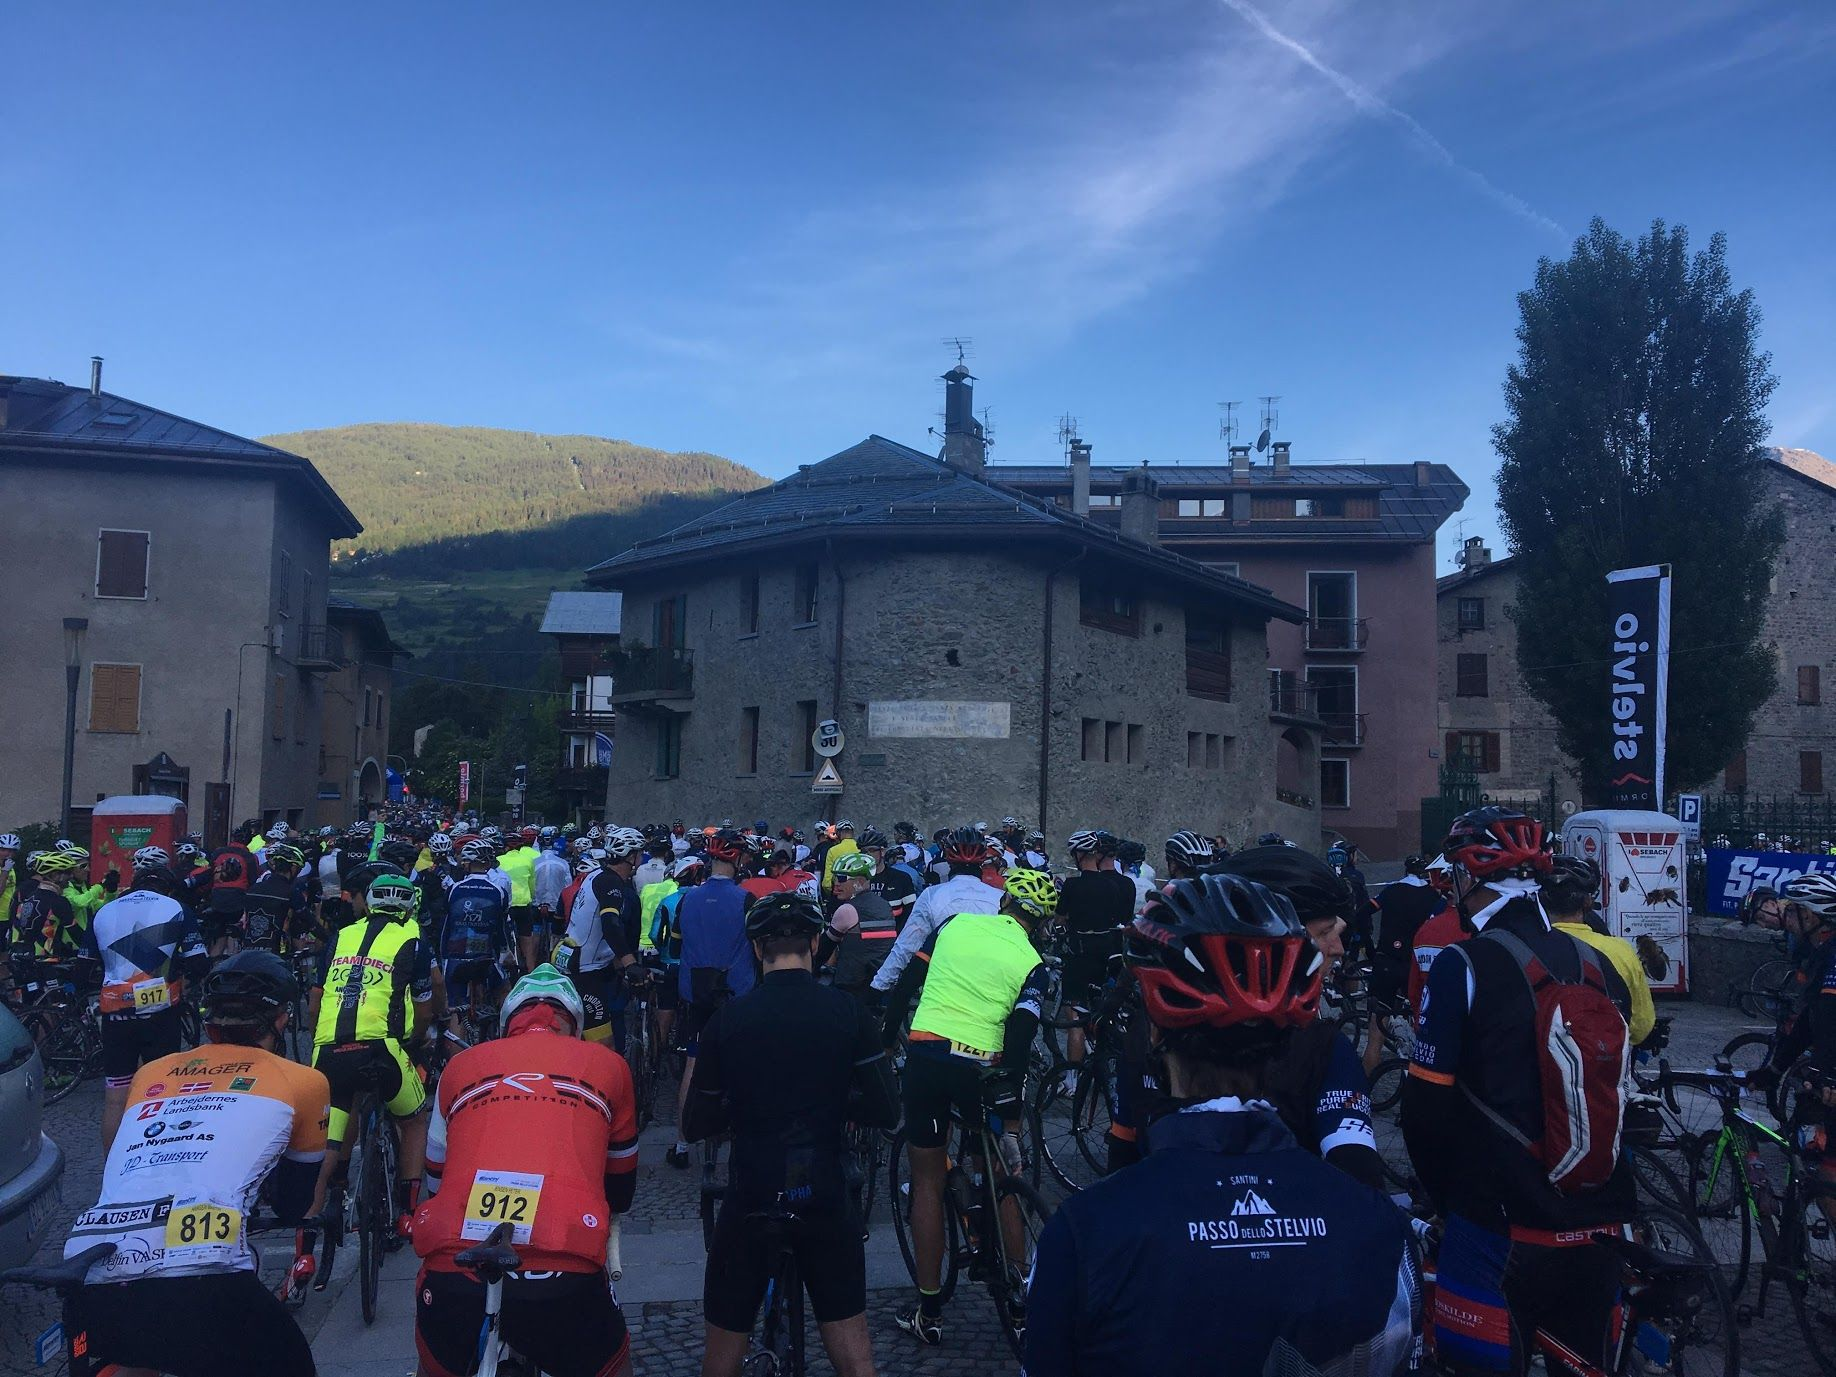 The tense start at a European sportive